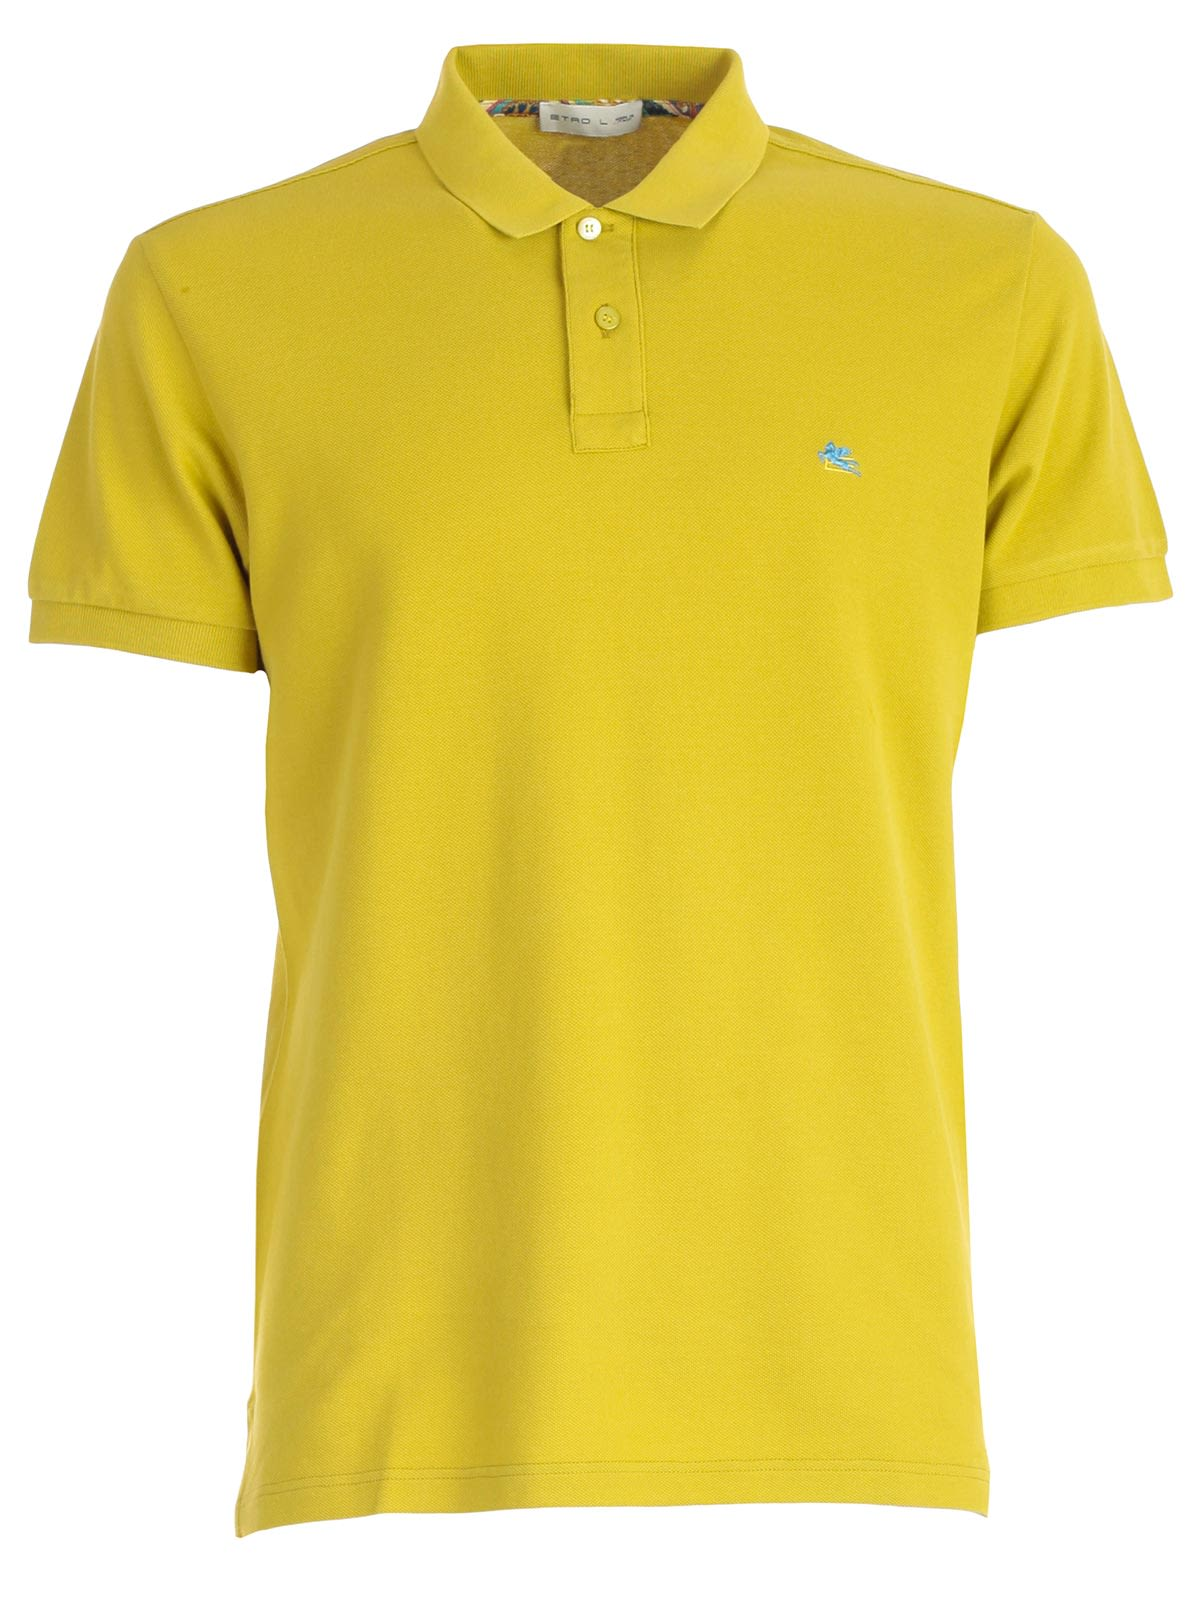 Etro Etro Embroidered Polo Shirt Giallo 10801546 Italist